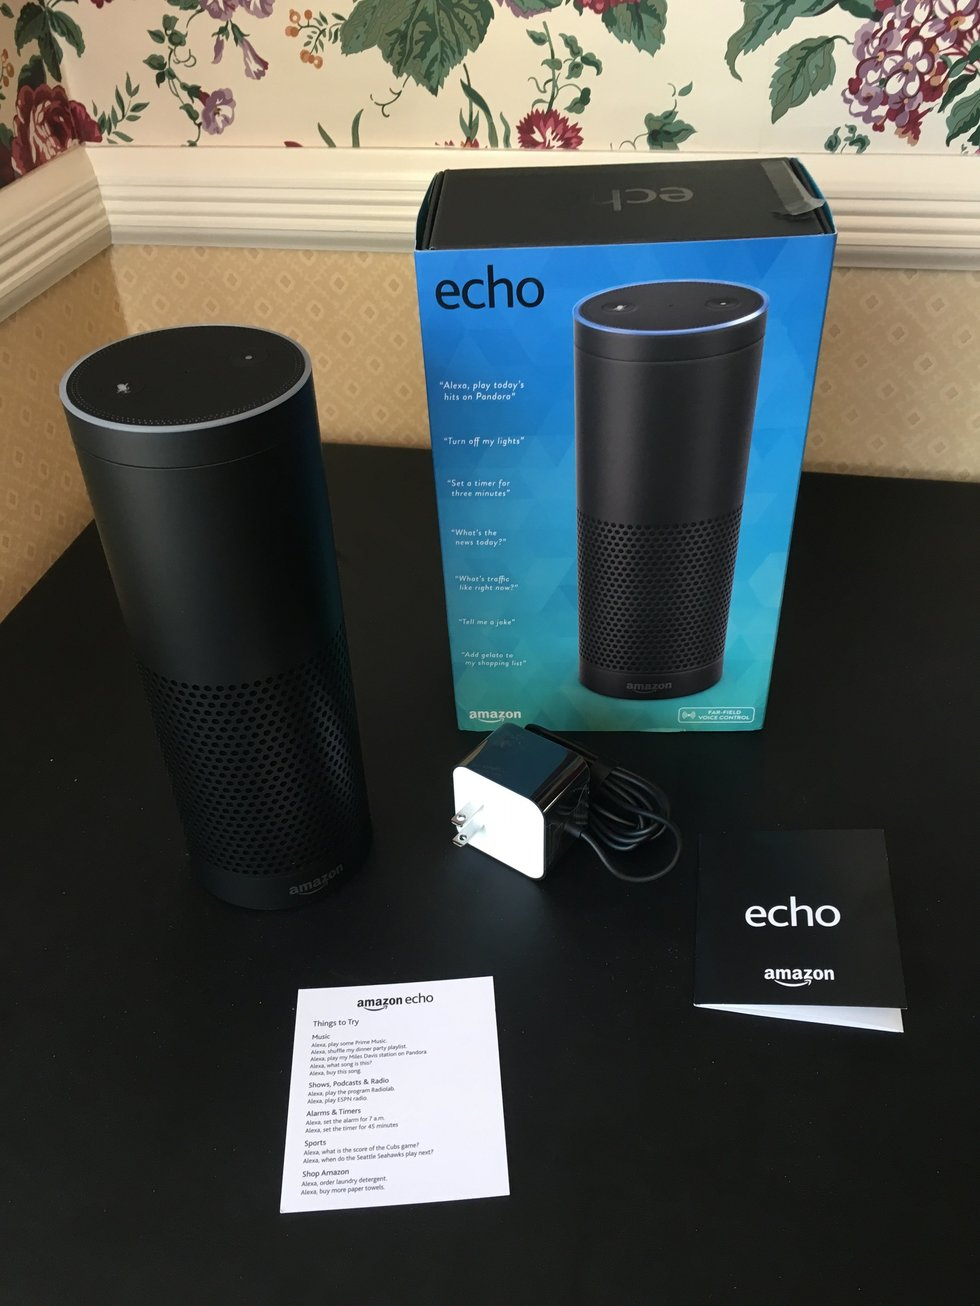 Amazon Echo works with Vivint